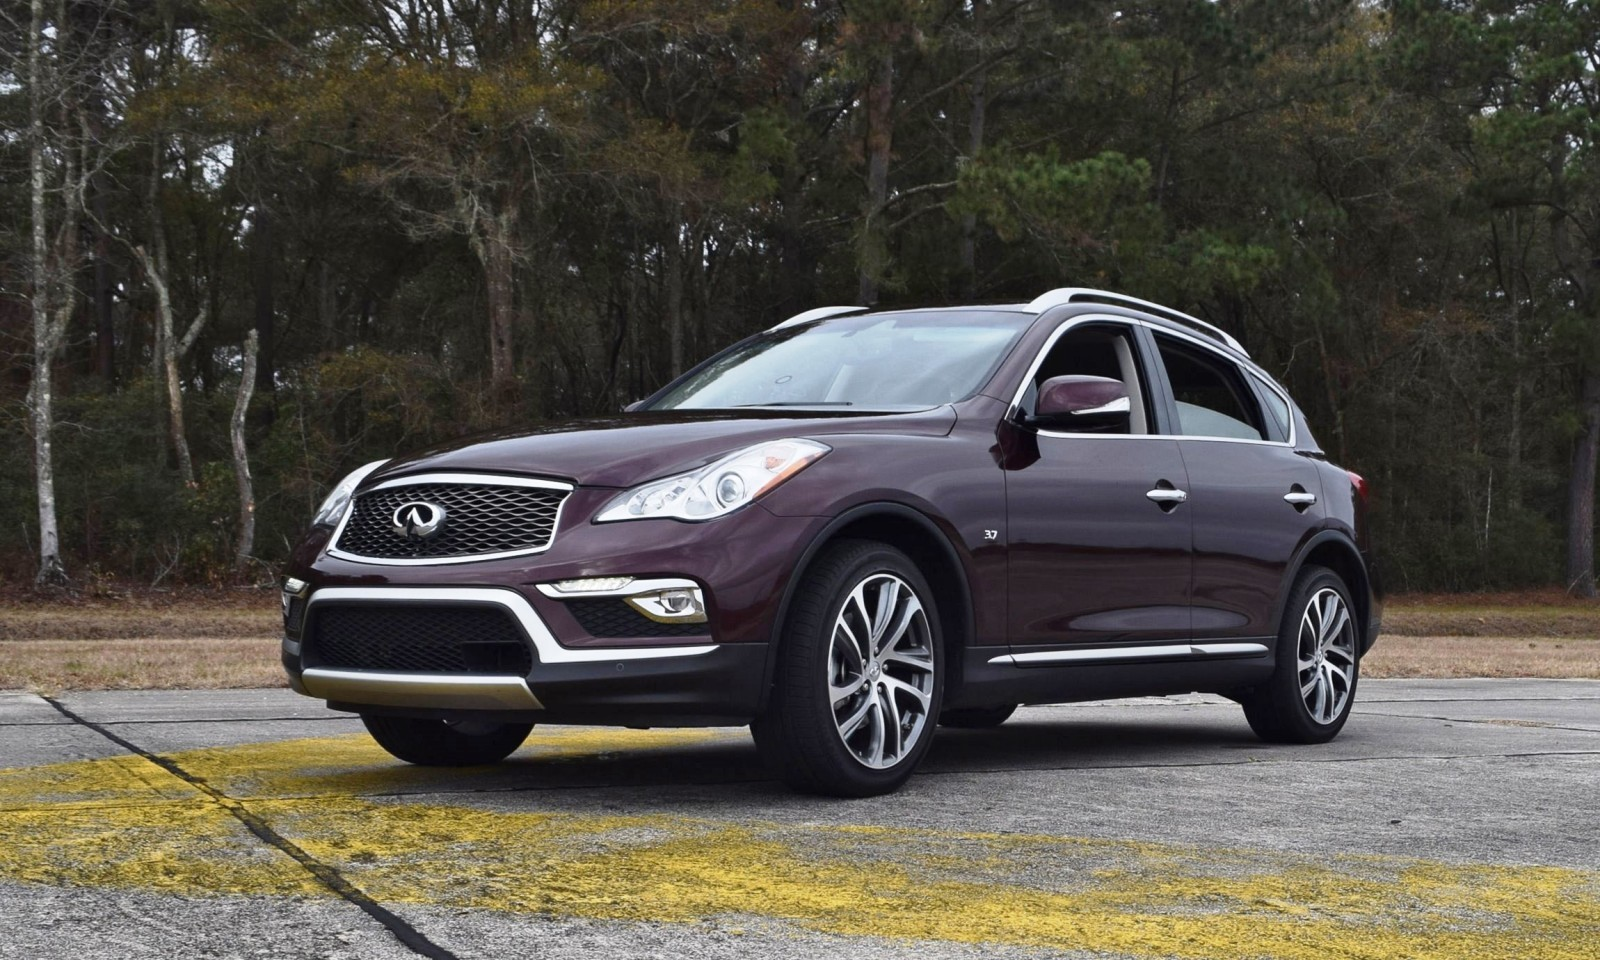 road test review 2016 infiniti qx50. Black Bedroom Furniture Sets. Home Design Ideas